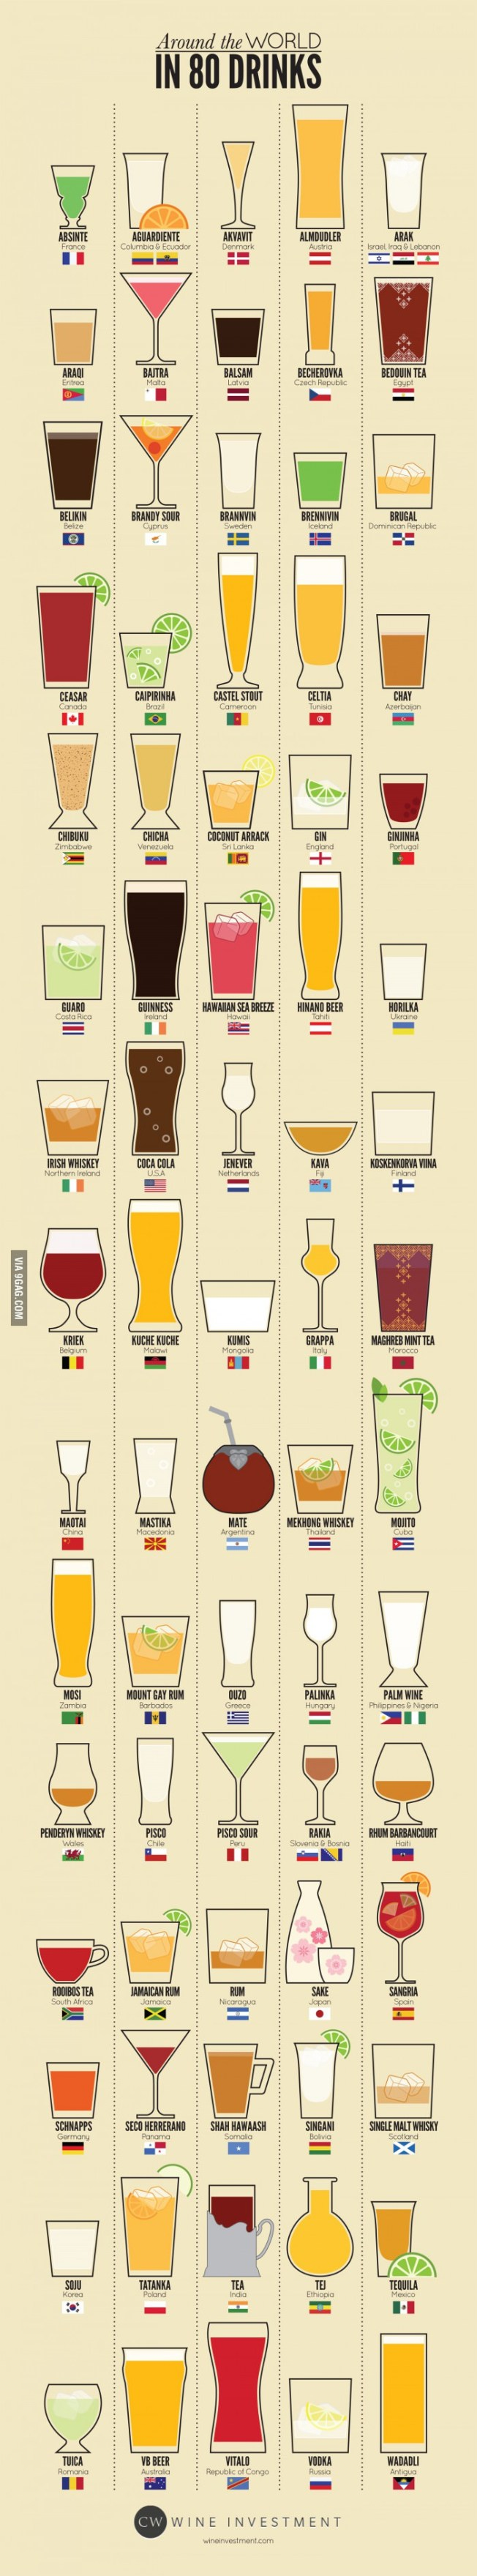 around_the_world_in_80_drinks